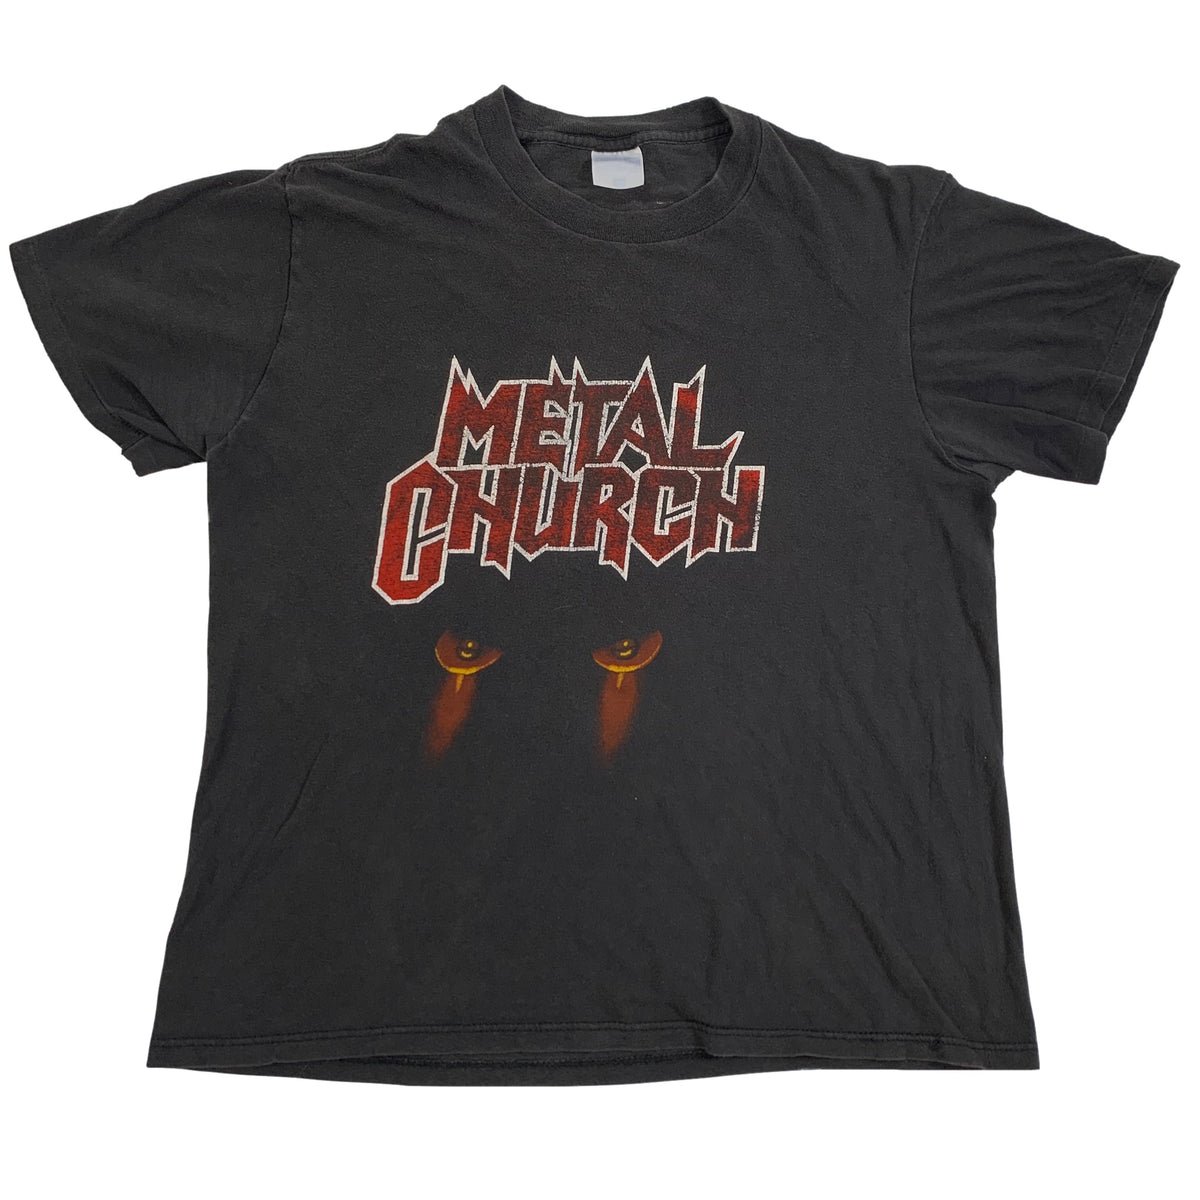 "Vintage Metal Church ""North America"" Tour T-Shirt"